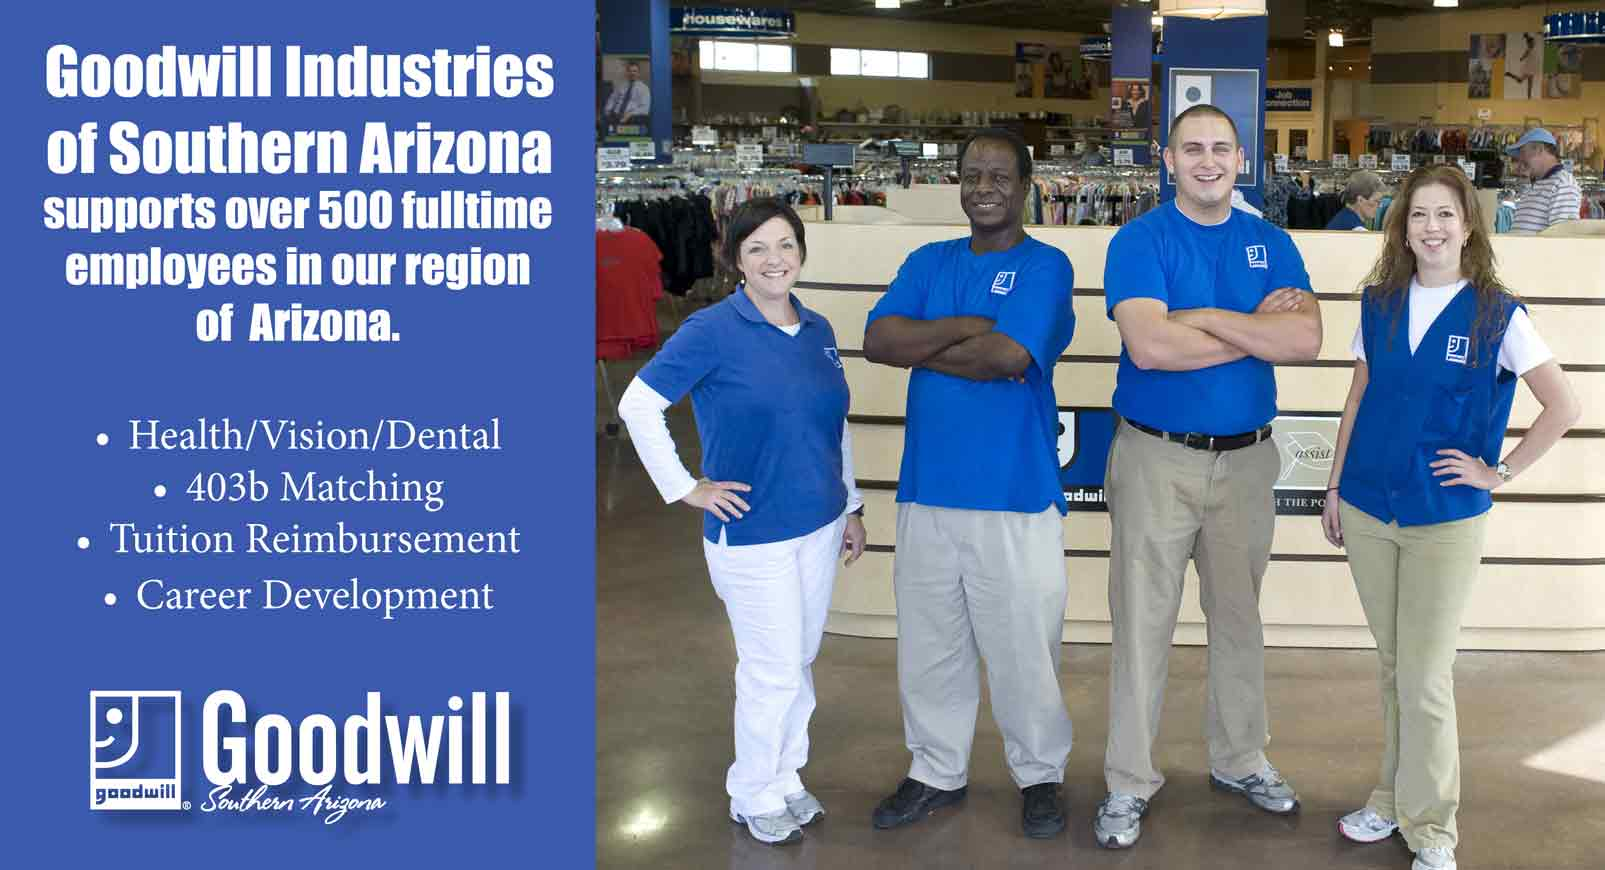 goodwill current openings | find work and help build your community!